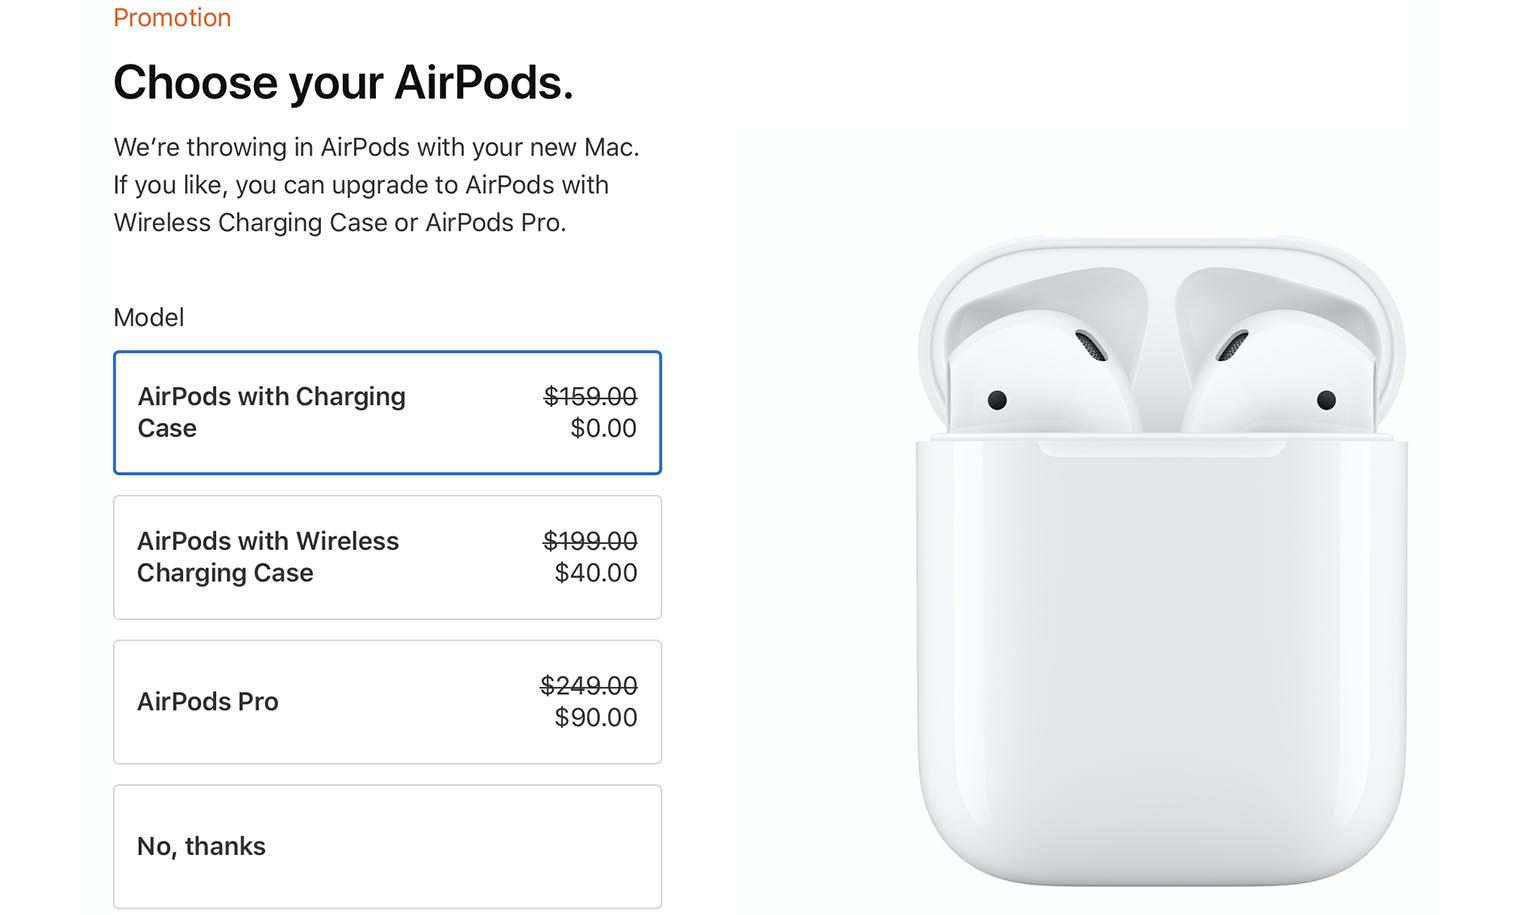 Back to School 2020 AirPods promo